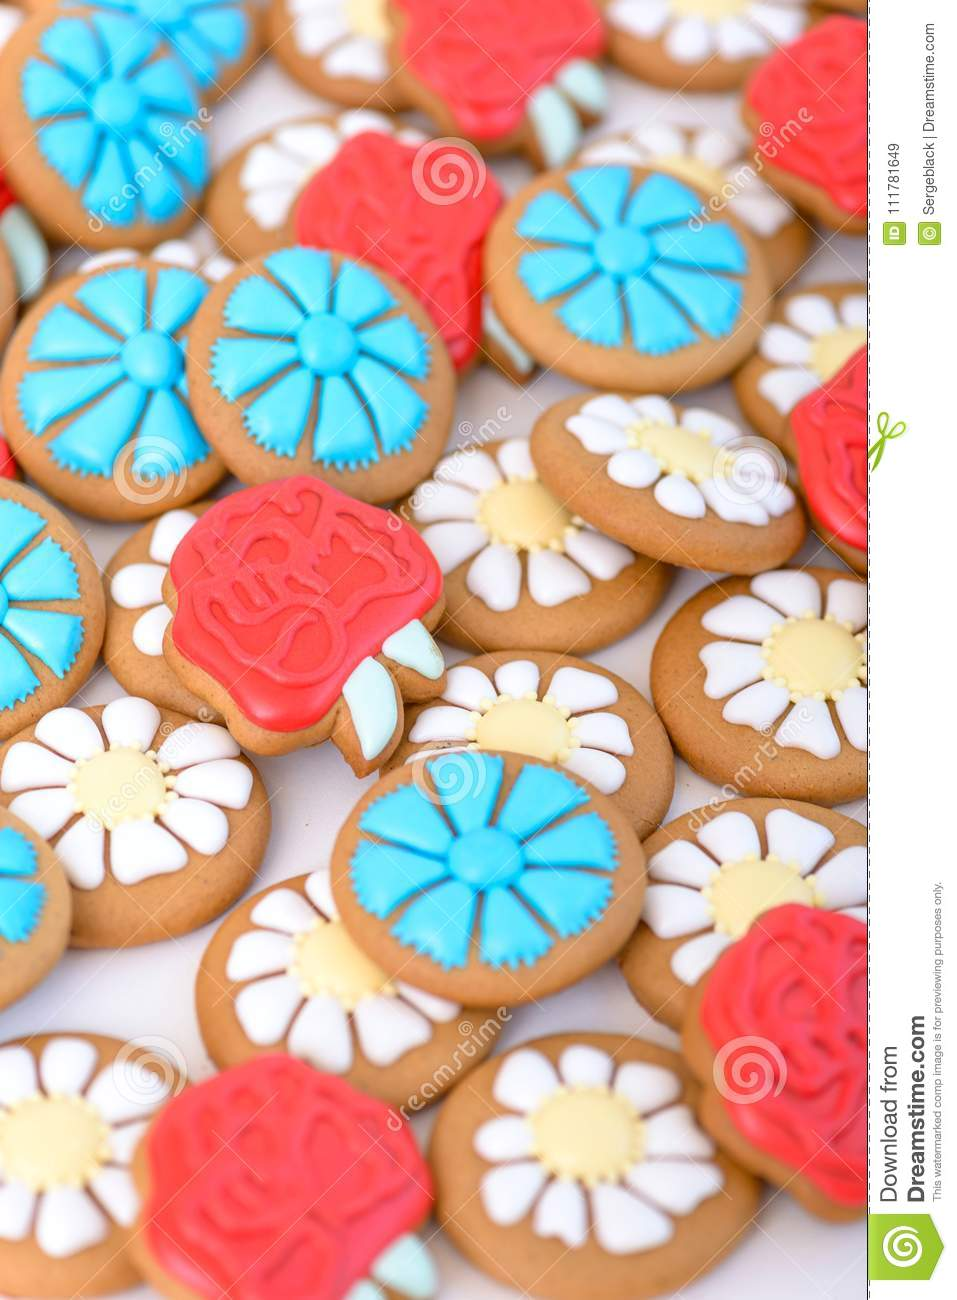 Colorful gingerbread cookie in the shape of flowers